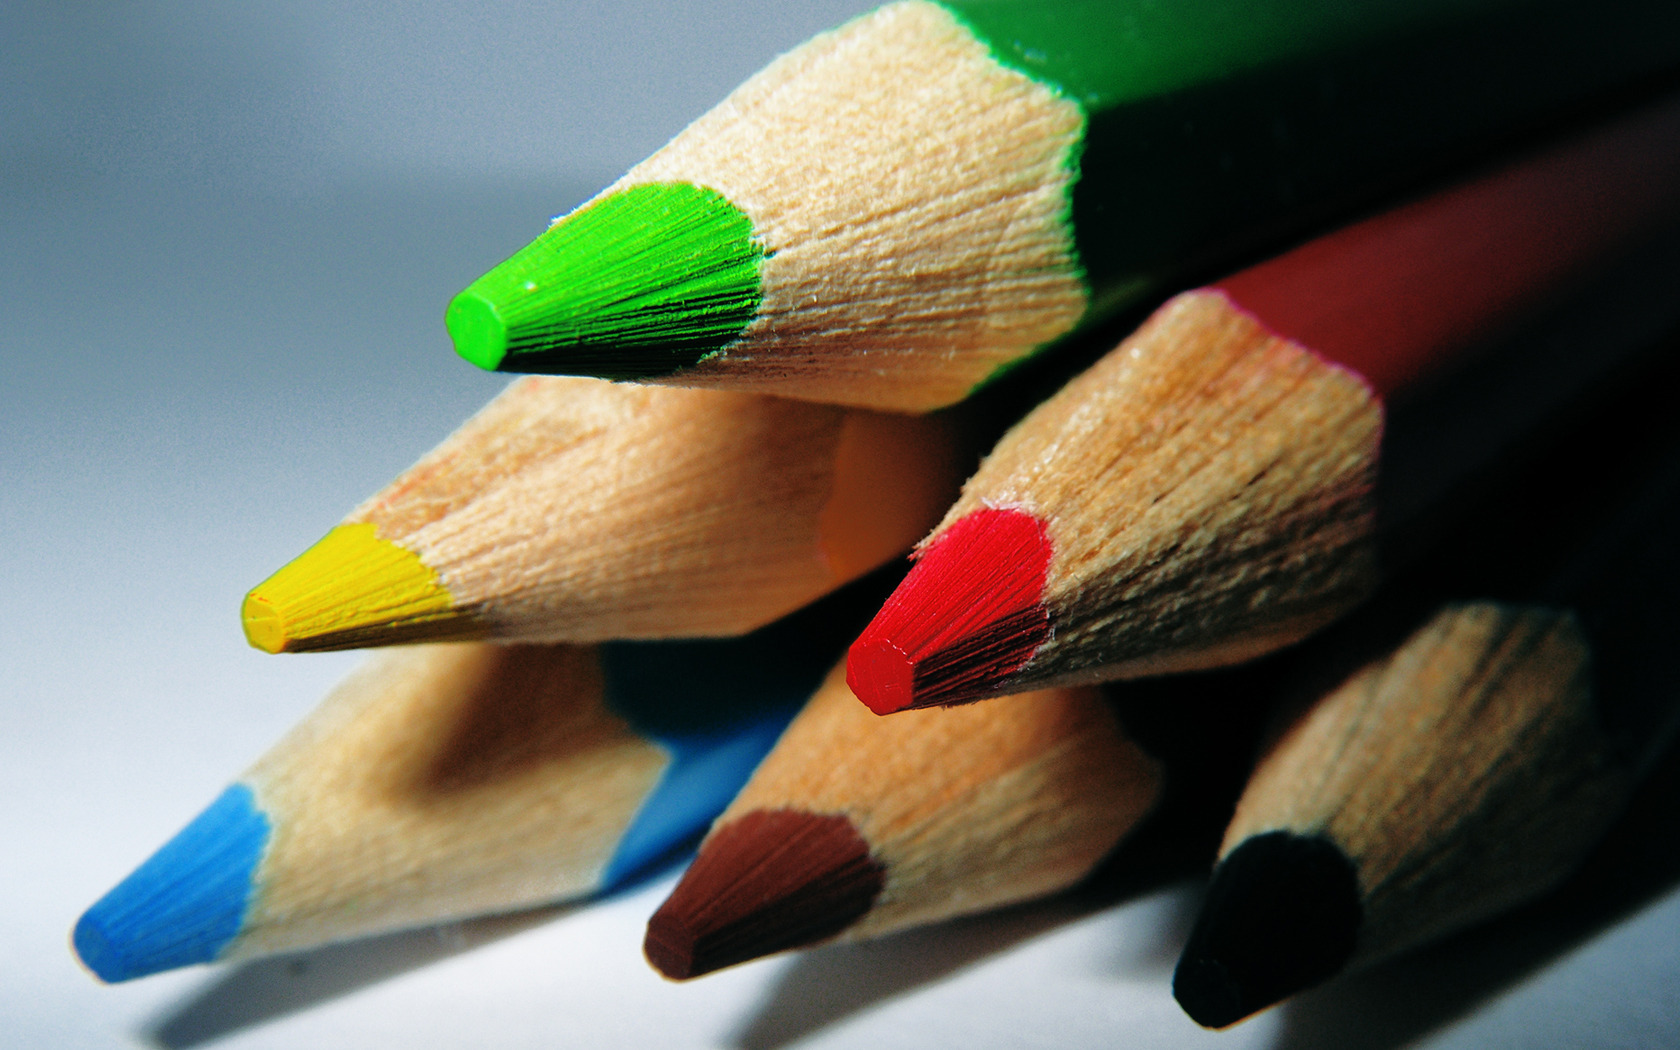 Historian Henry Petroski notes that while ever more efficient means of mass production of pencils has driven the replacement cost of a pencil down before this people